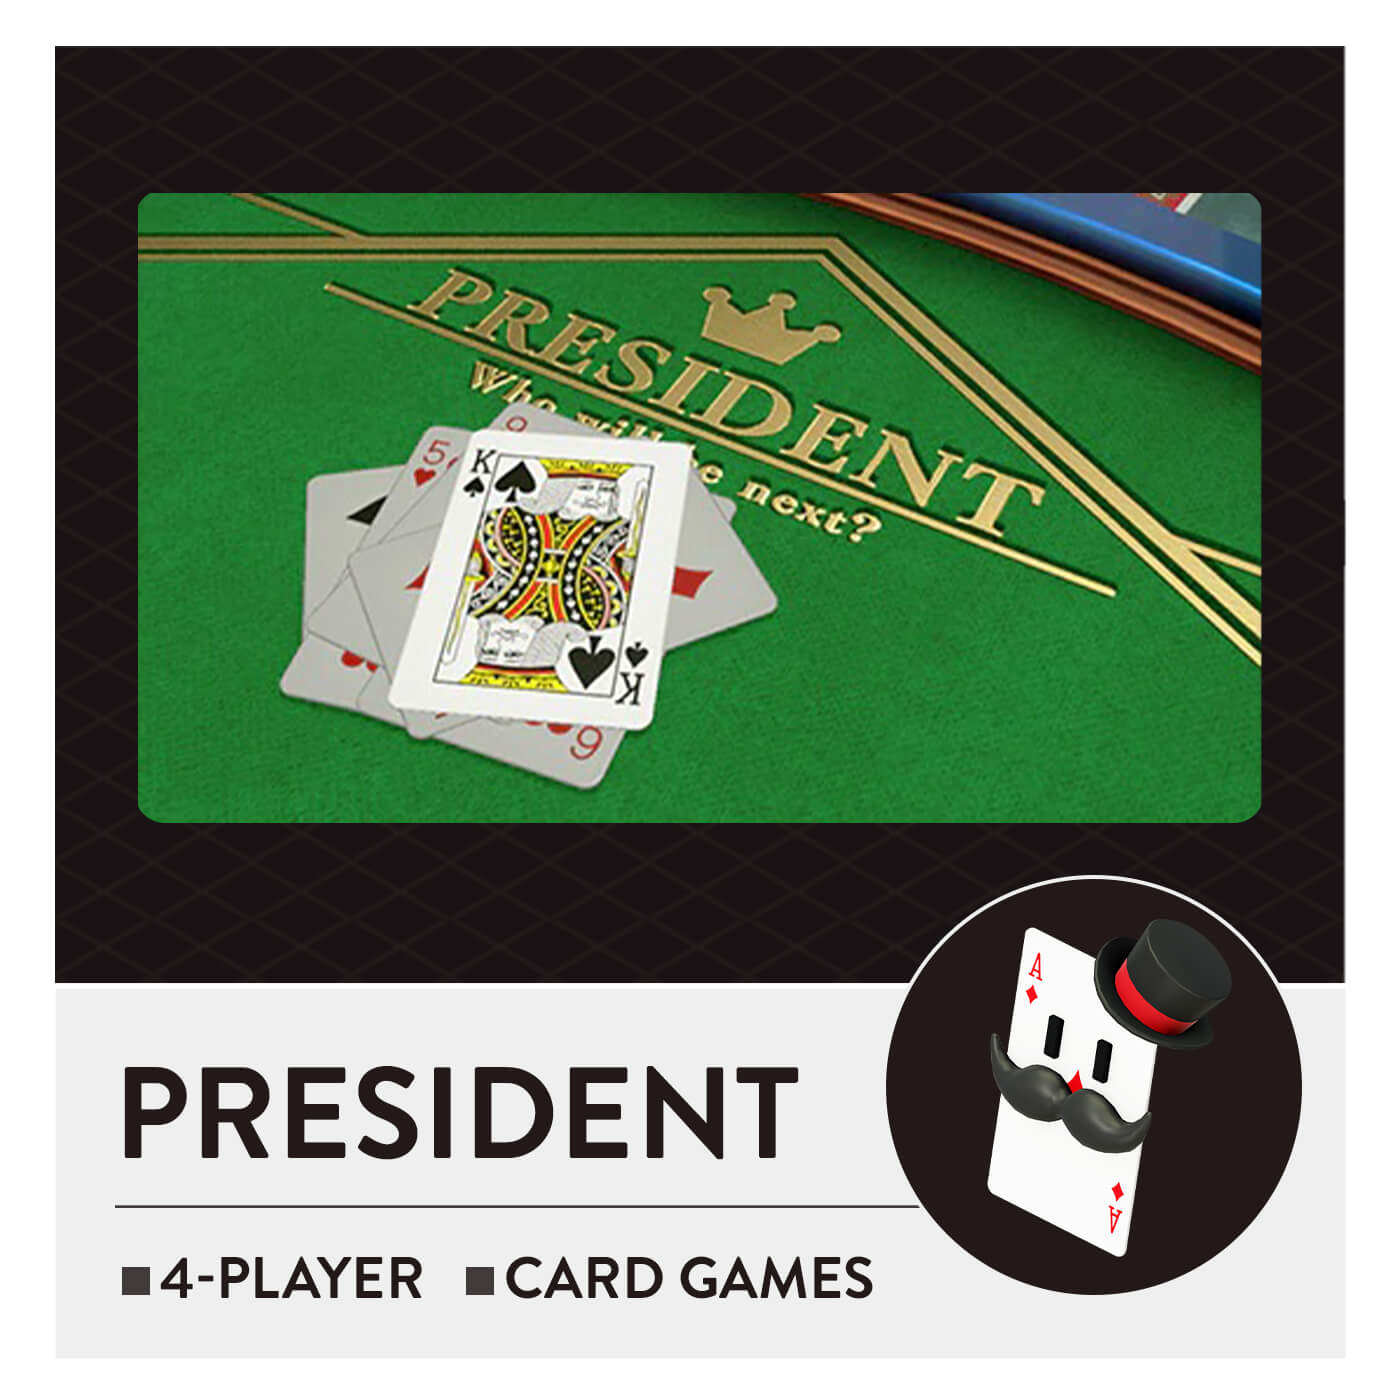 51 Worldwide Games - President